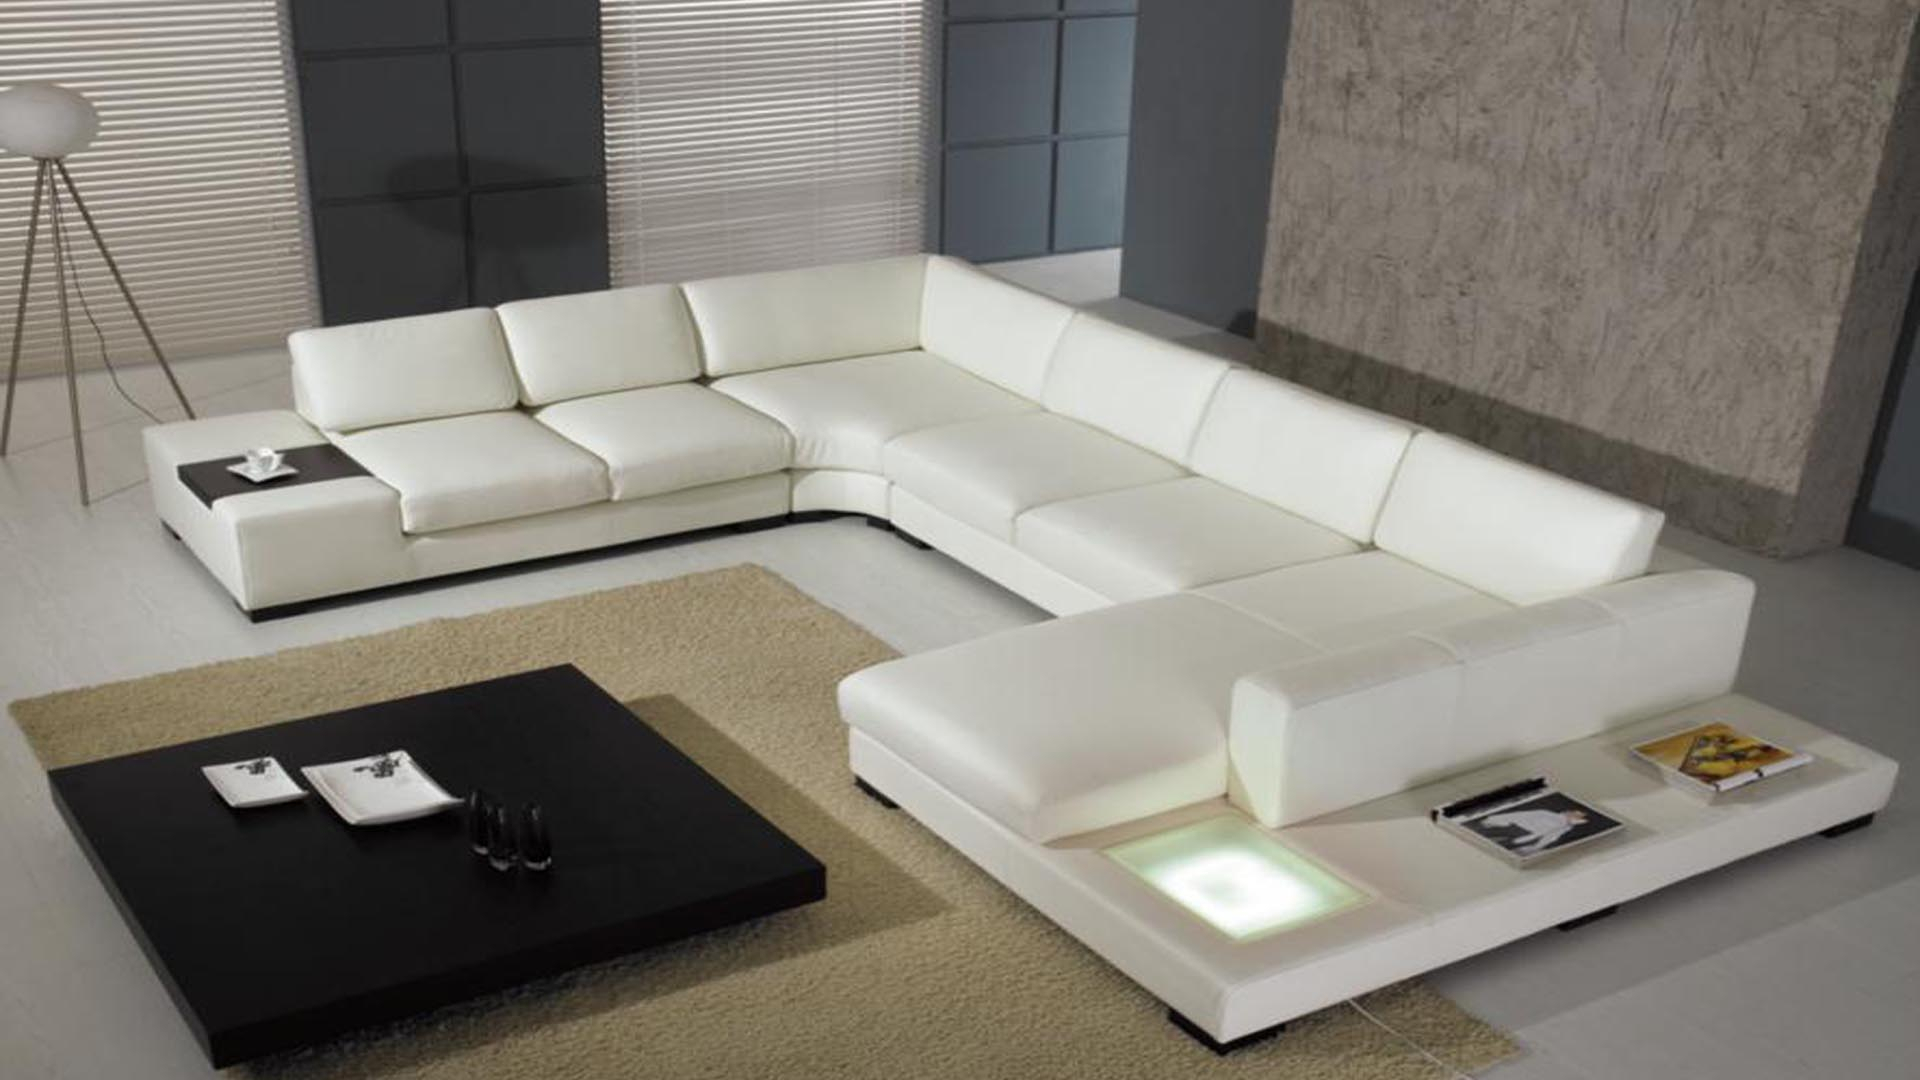 Sectional Sofa Sleepers For Better Sleep Quality And Inside Oversized Sectional Sofas (View 9 of 15)